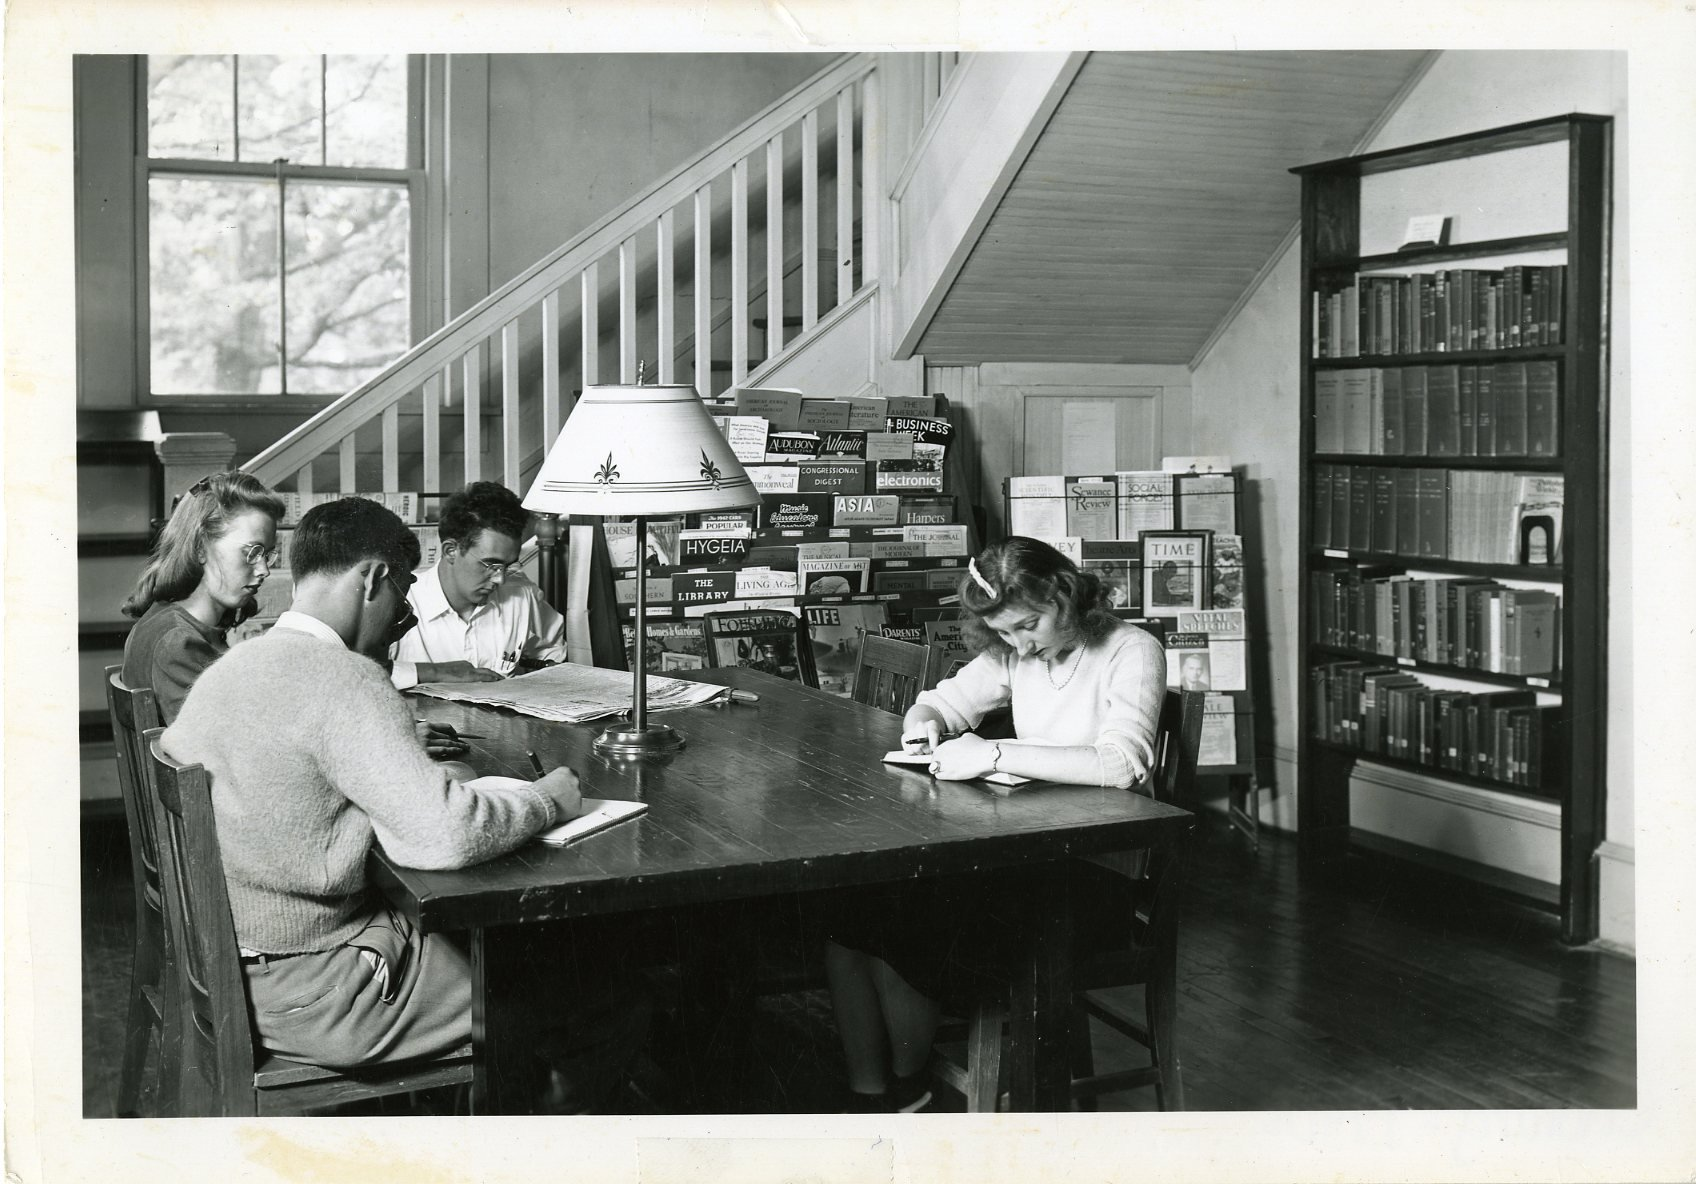 Students working in present day Tate Library, circa 1930s-1940s.